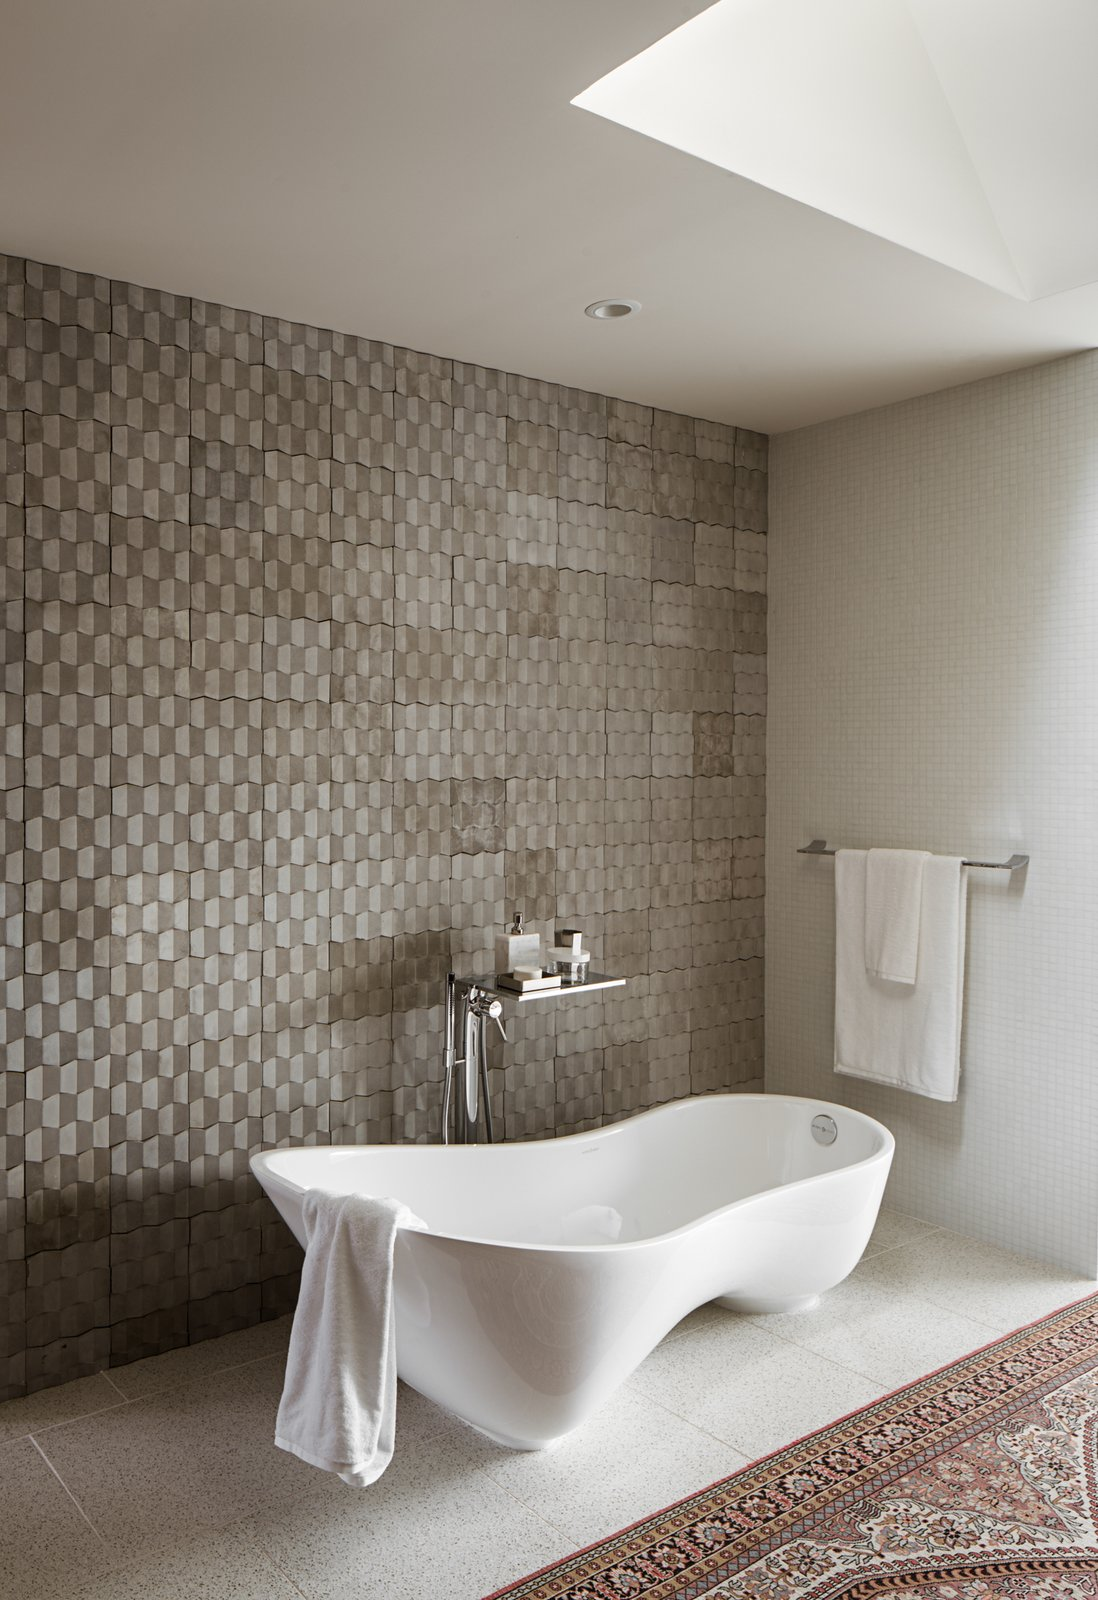 Bath Room, Porcelain Tile Floor, Freestanding Tub, Recessed Lighting, and Stone Tile Wall Master bath  River Garden Trail Residence by Texas Construction Company